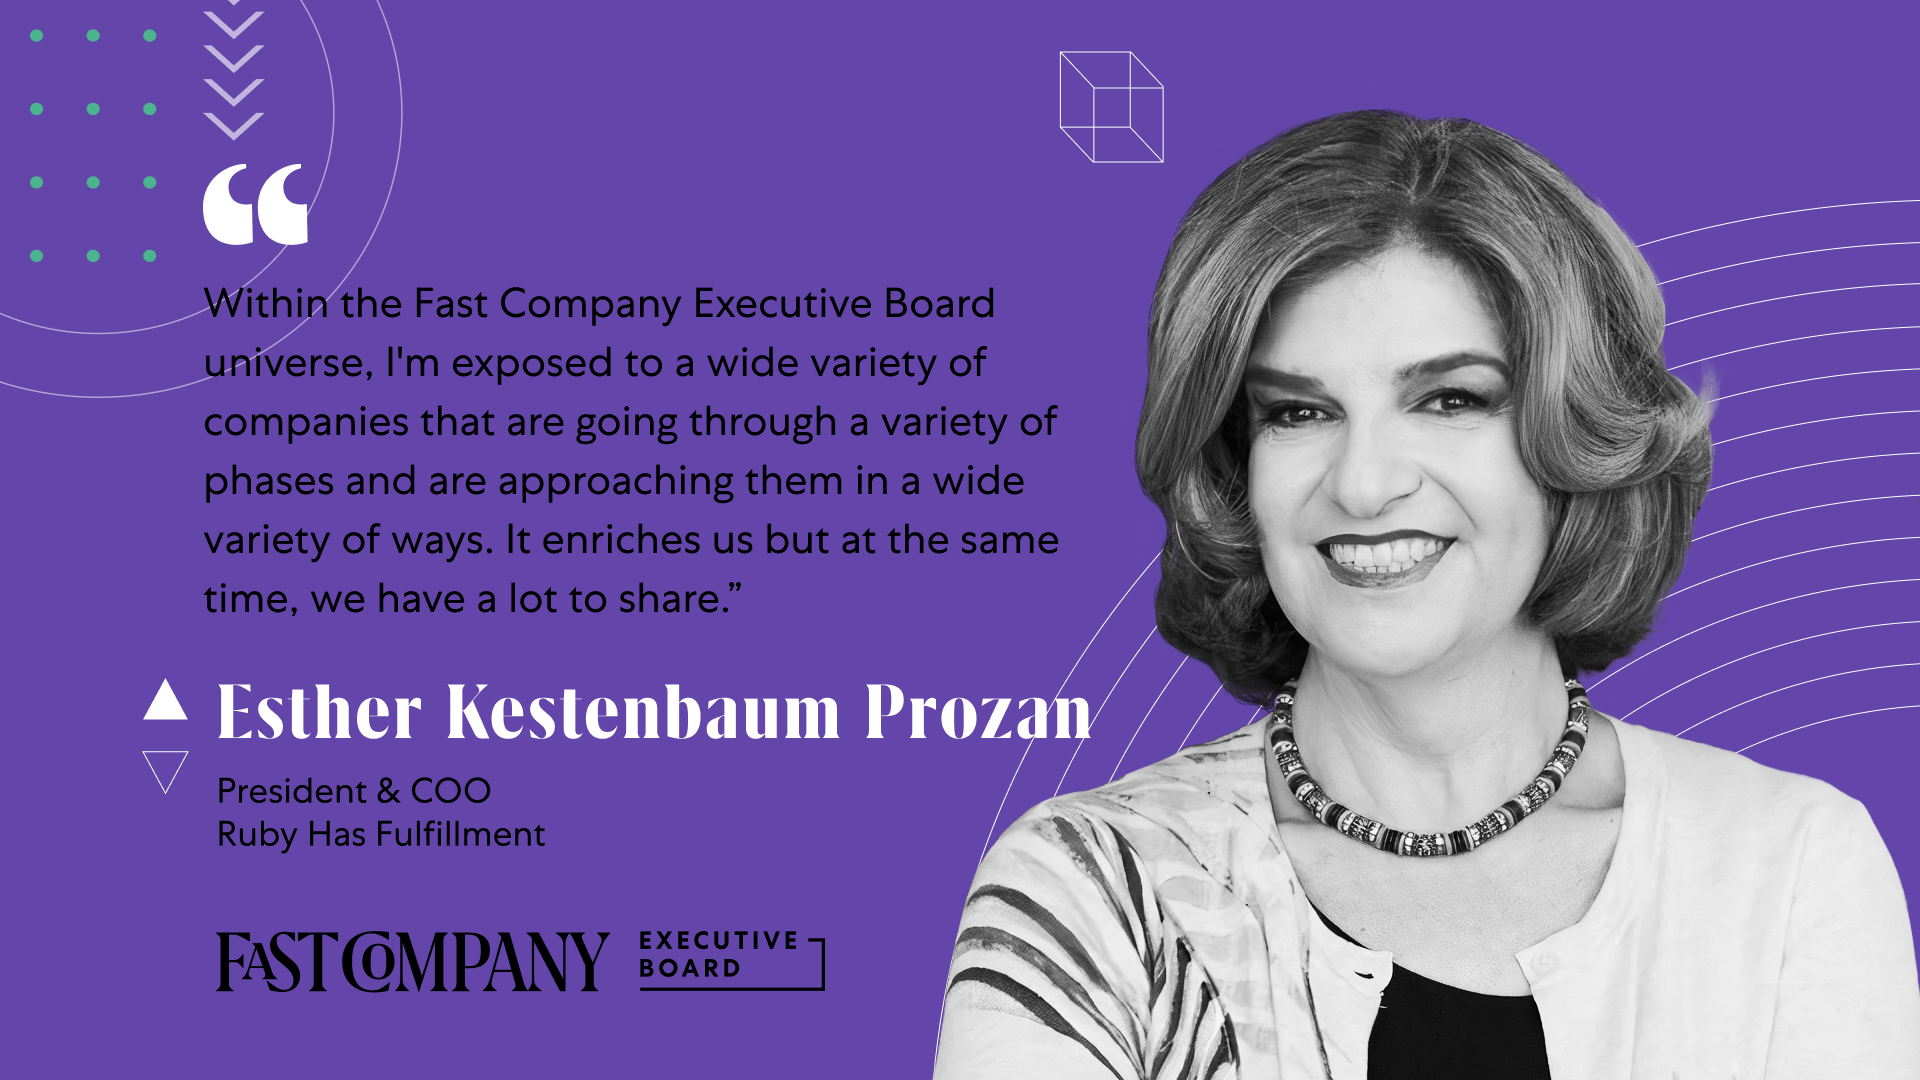 For Esther Kestenbaum Prozan, Fast Company Executive Board is a Valuable Knowledge-Sharing Platform